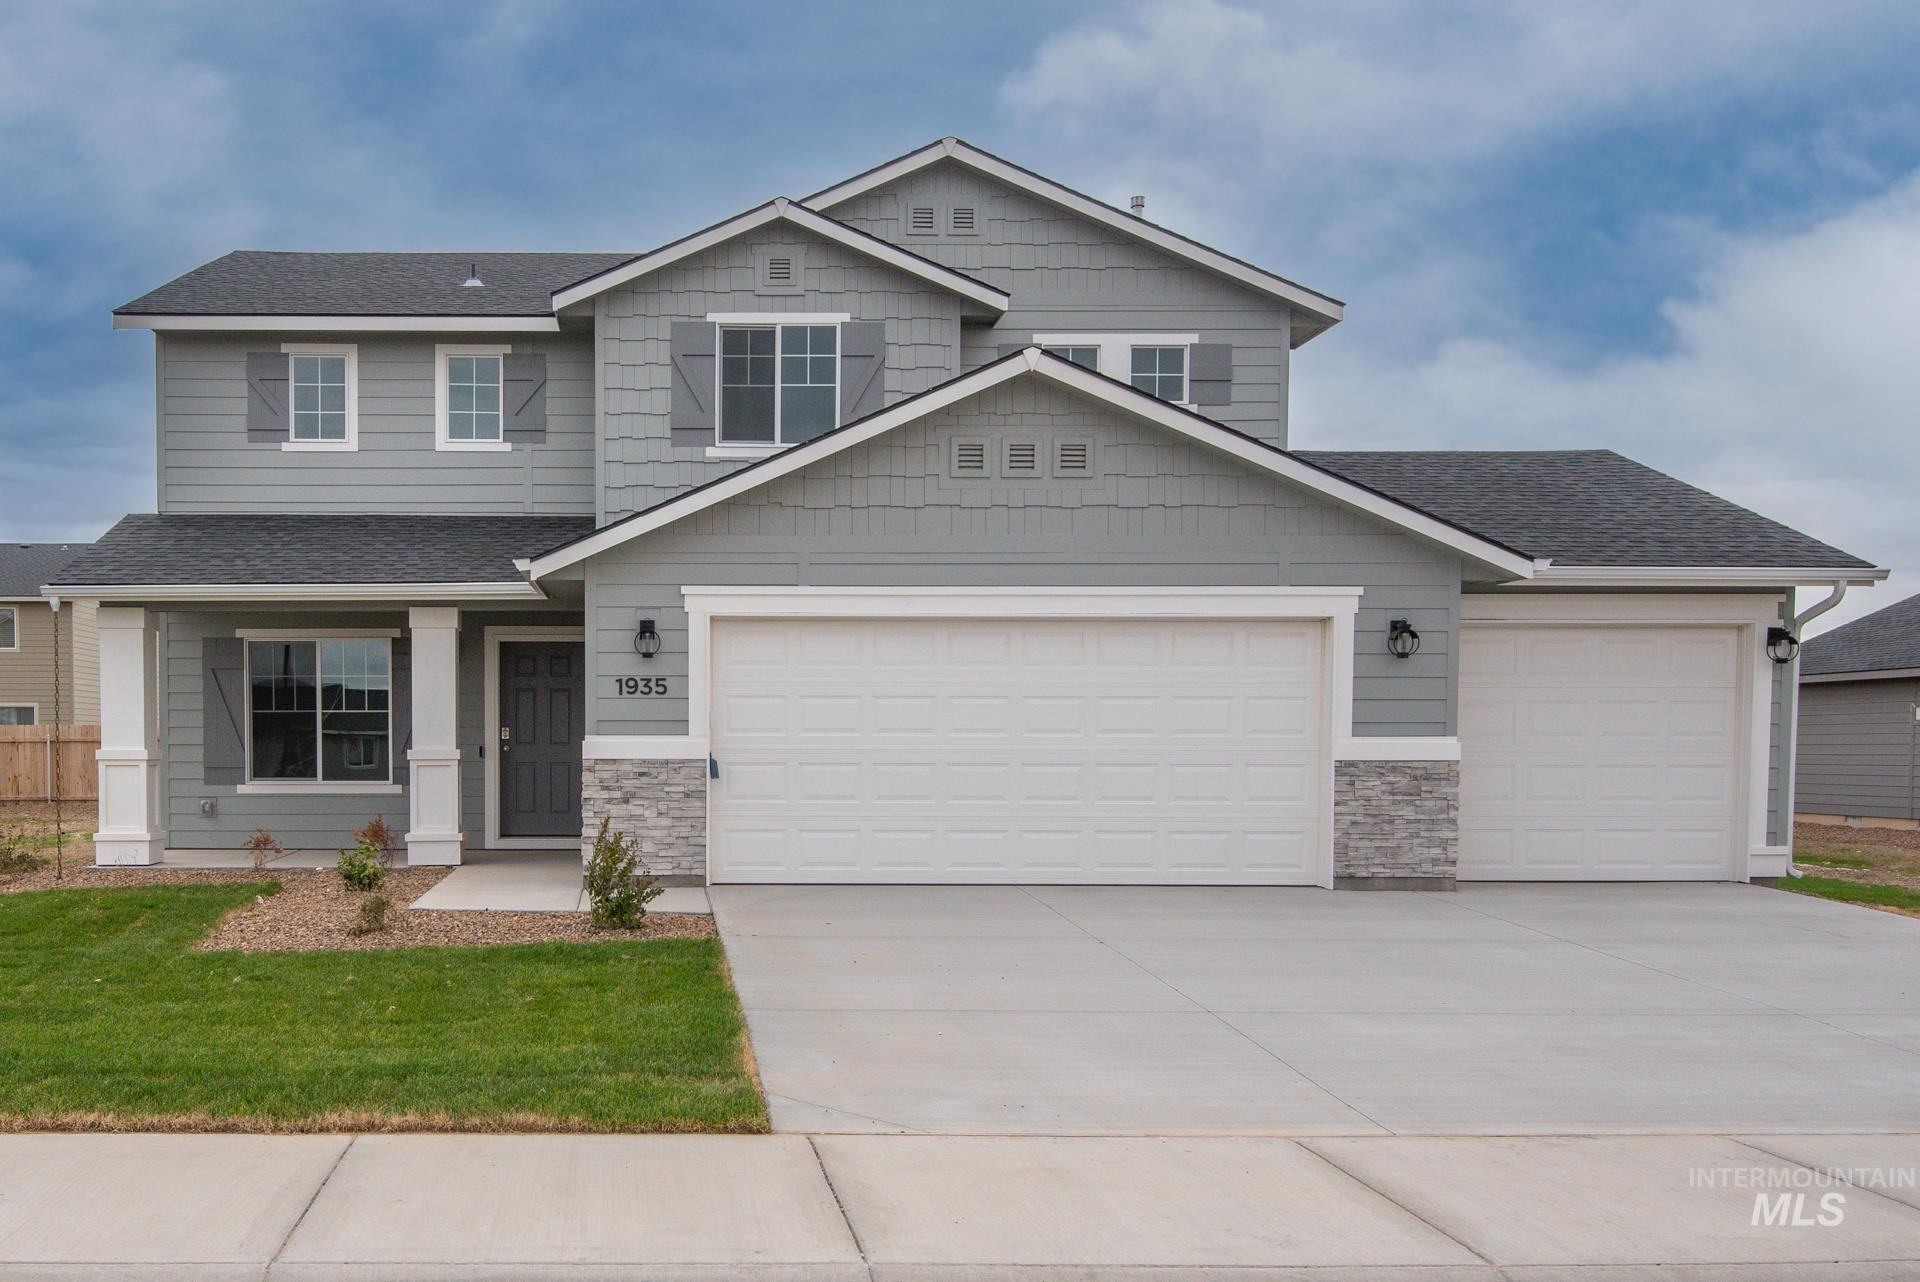 1935 SW Challis Dr, Mountain Home, ID 83647 - MLS#: 98821236